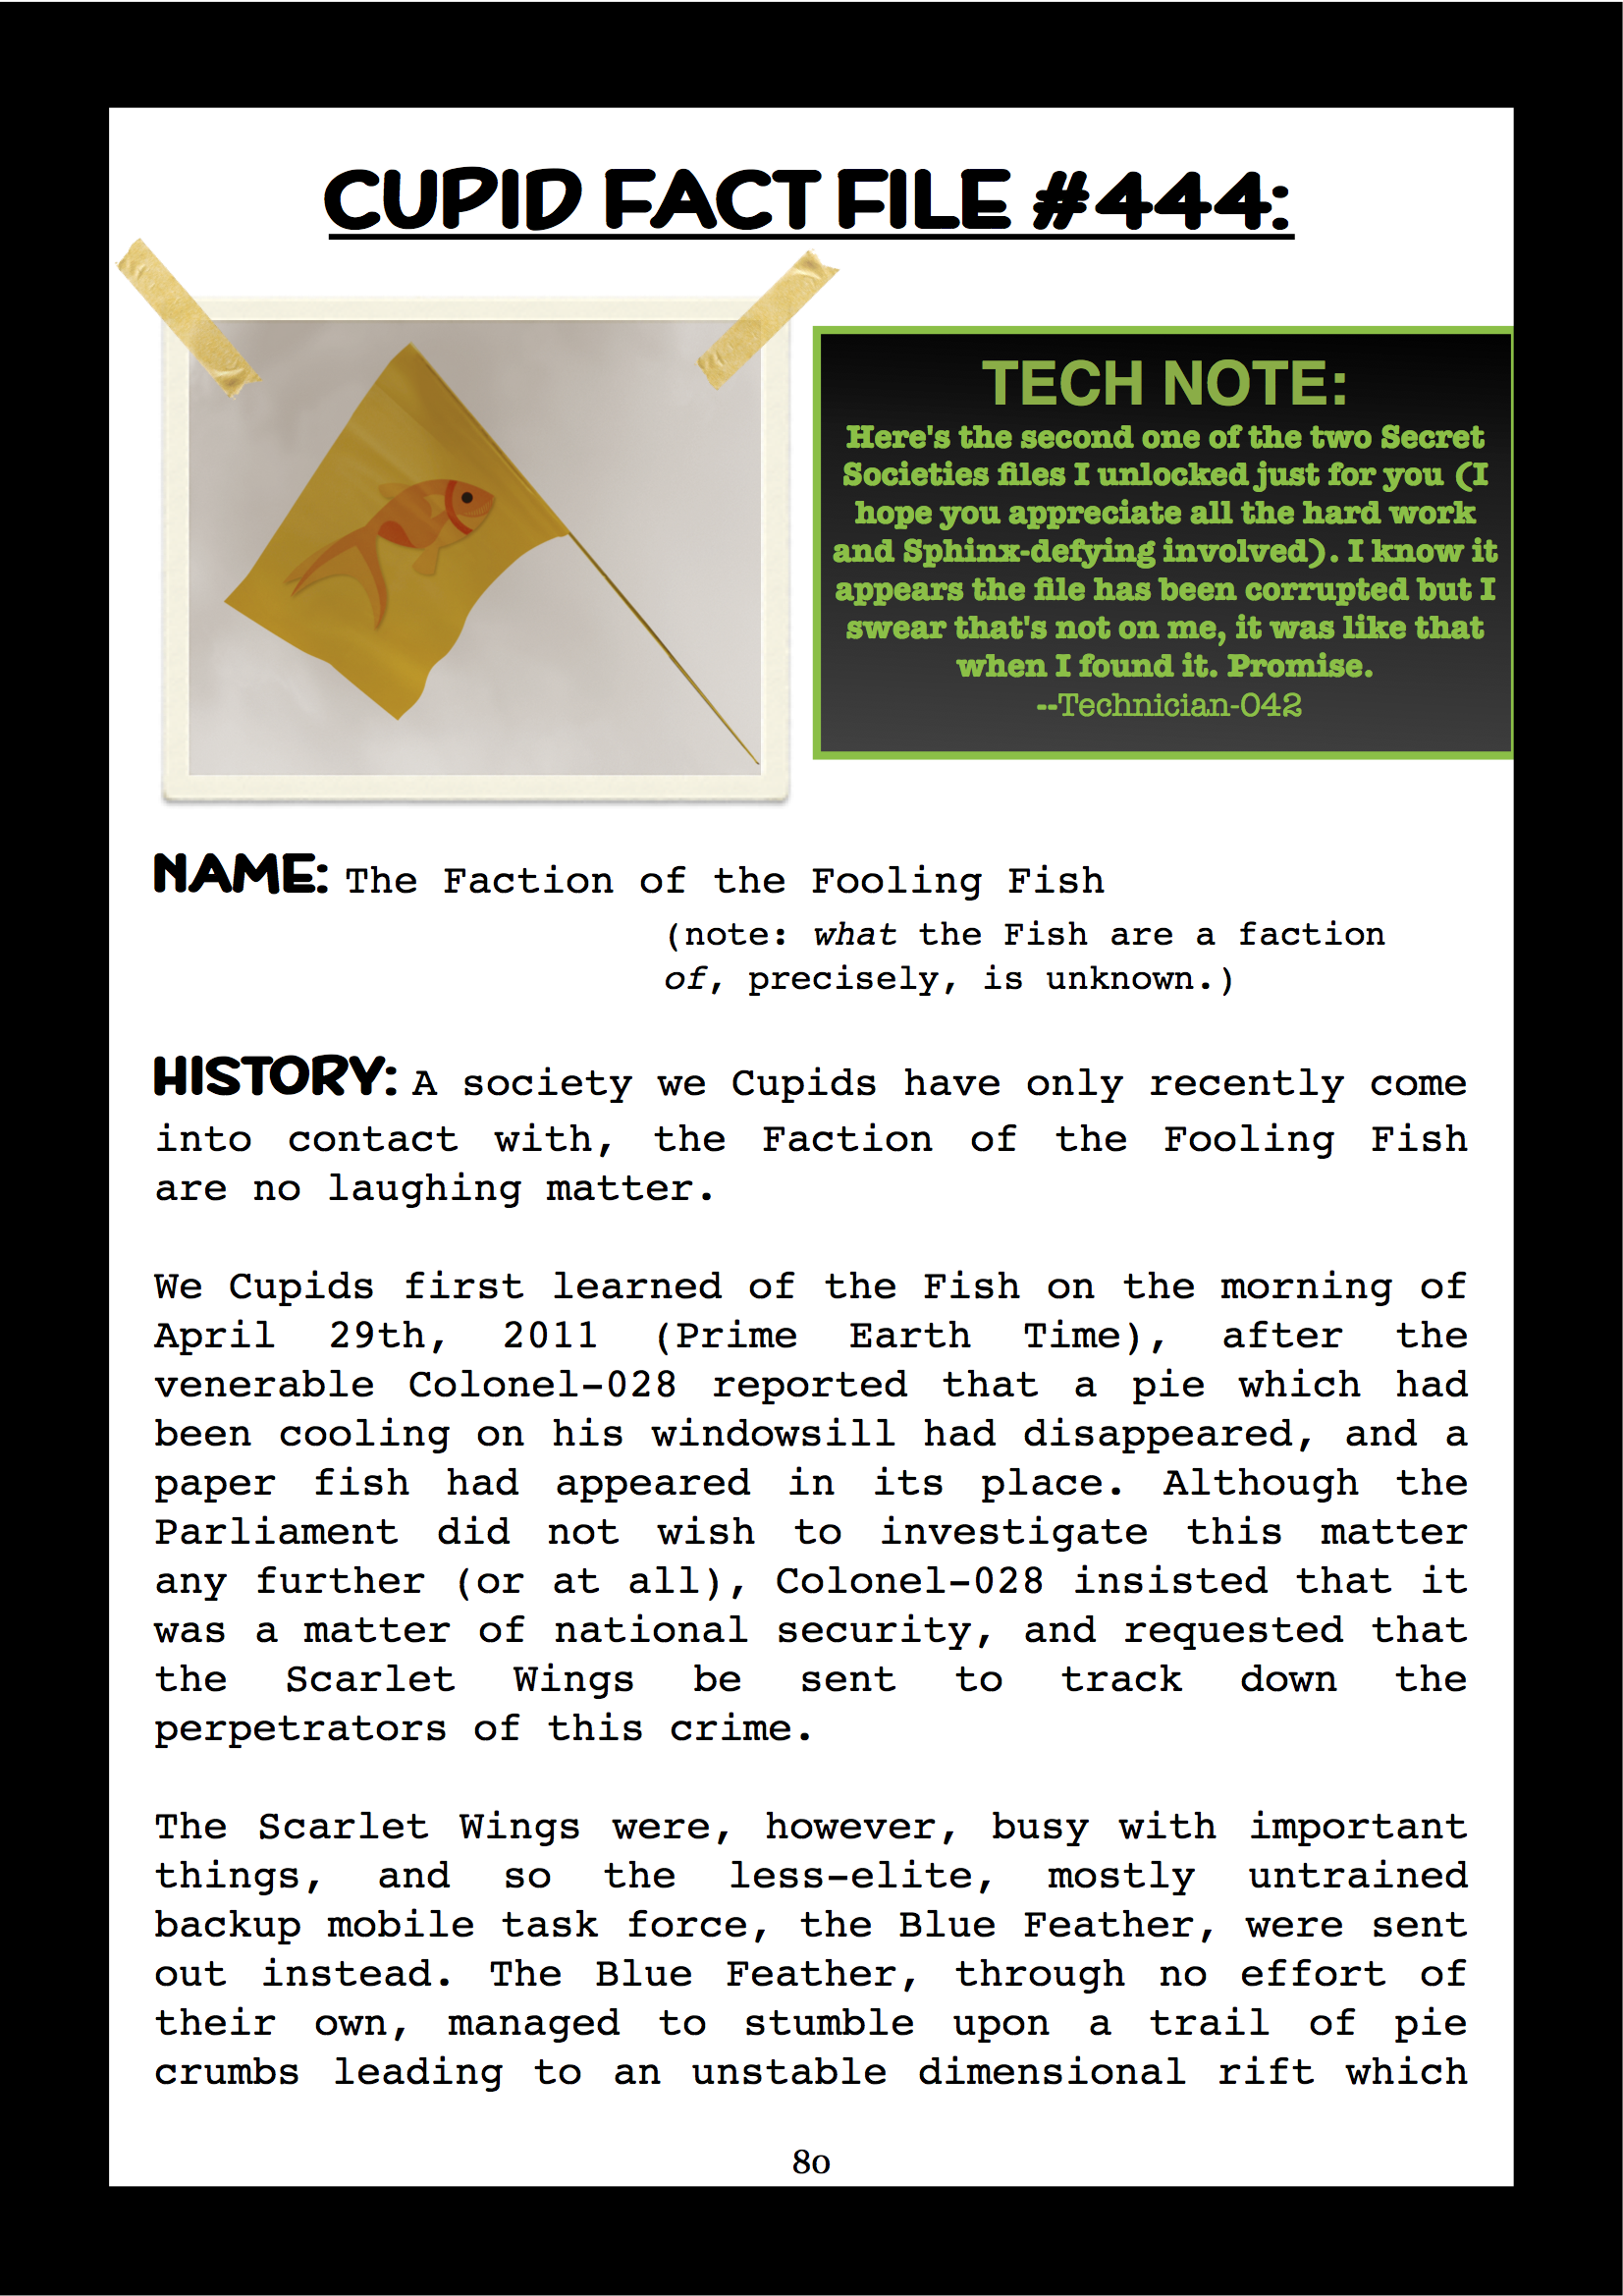 Cupid Fact File No. 444 — The Faction of the Fooling Fish